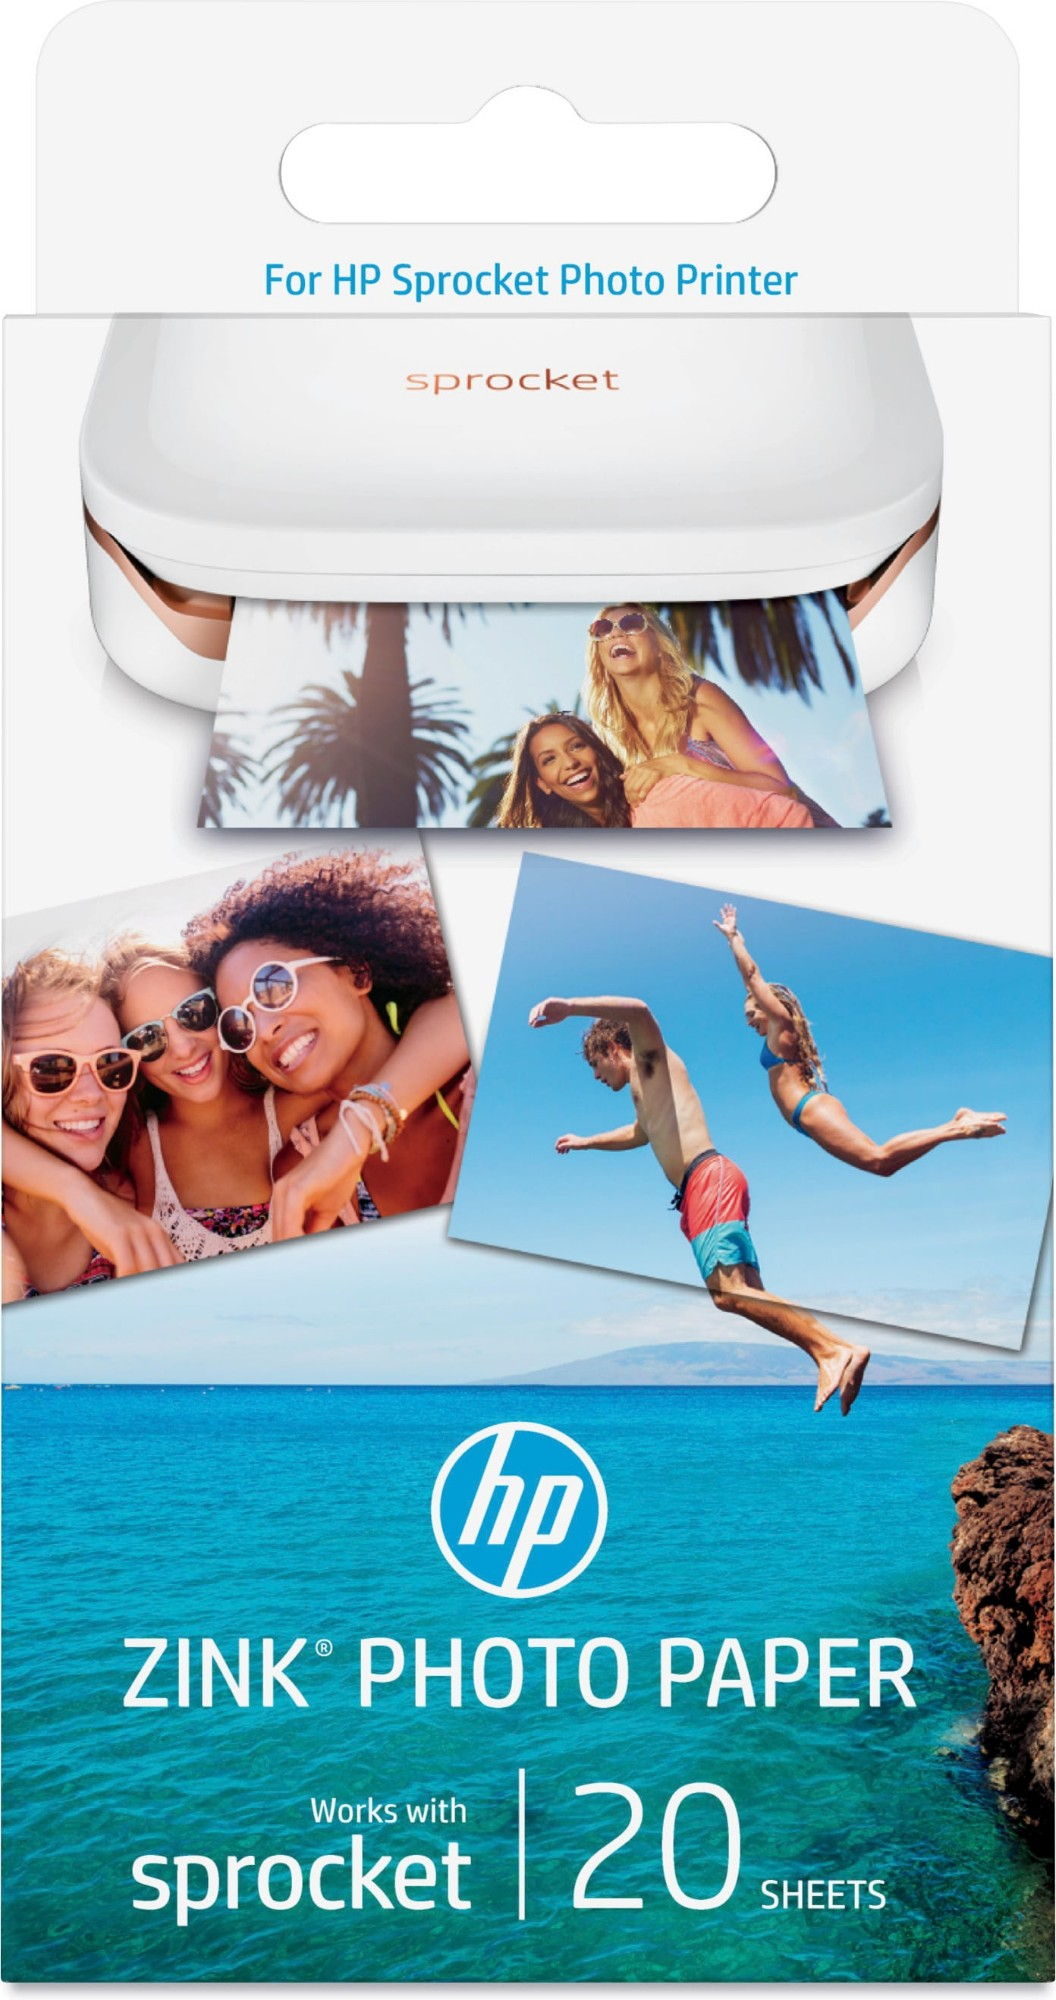 HP ZINK Sticky-backed 20 sht/2 x 3 in papel fotográfico Blanco Brillo